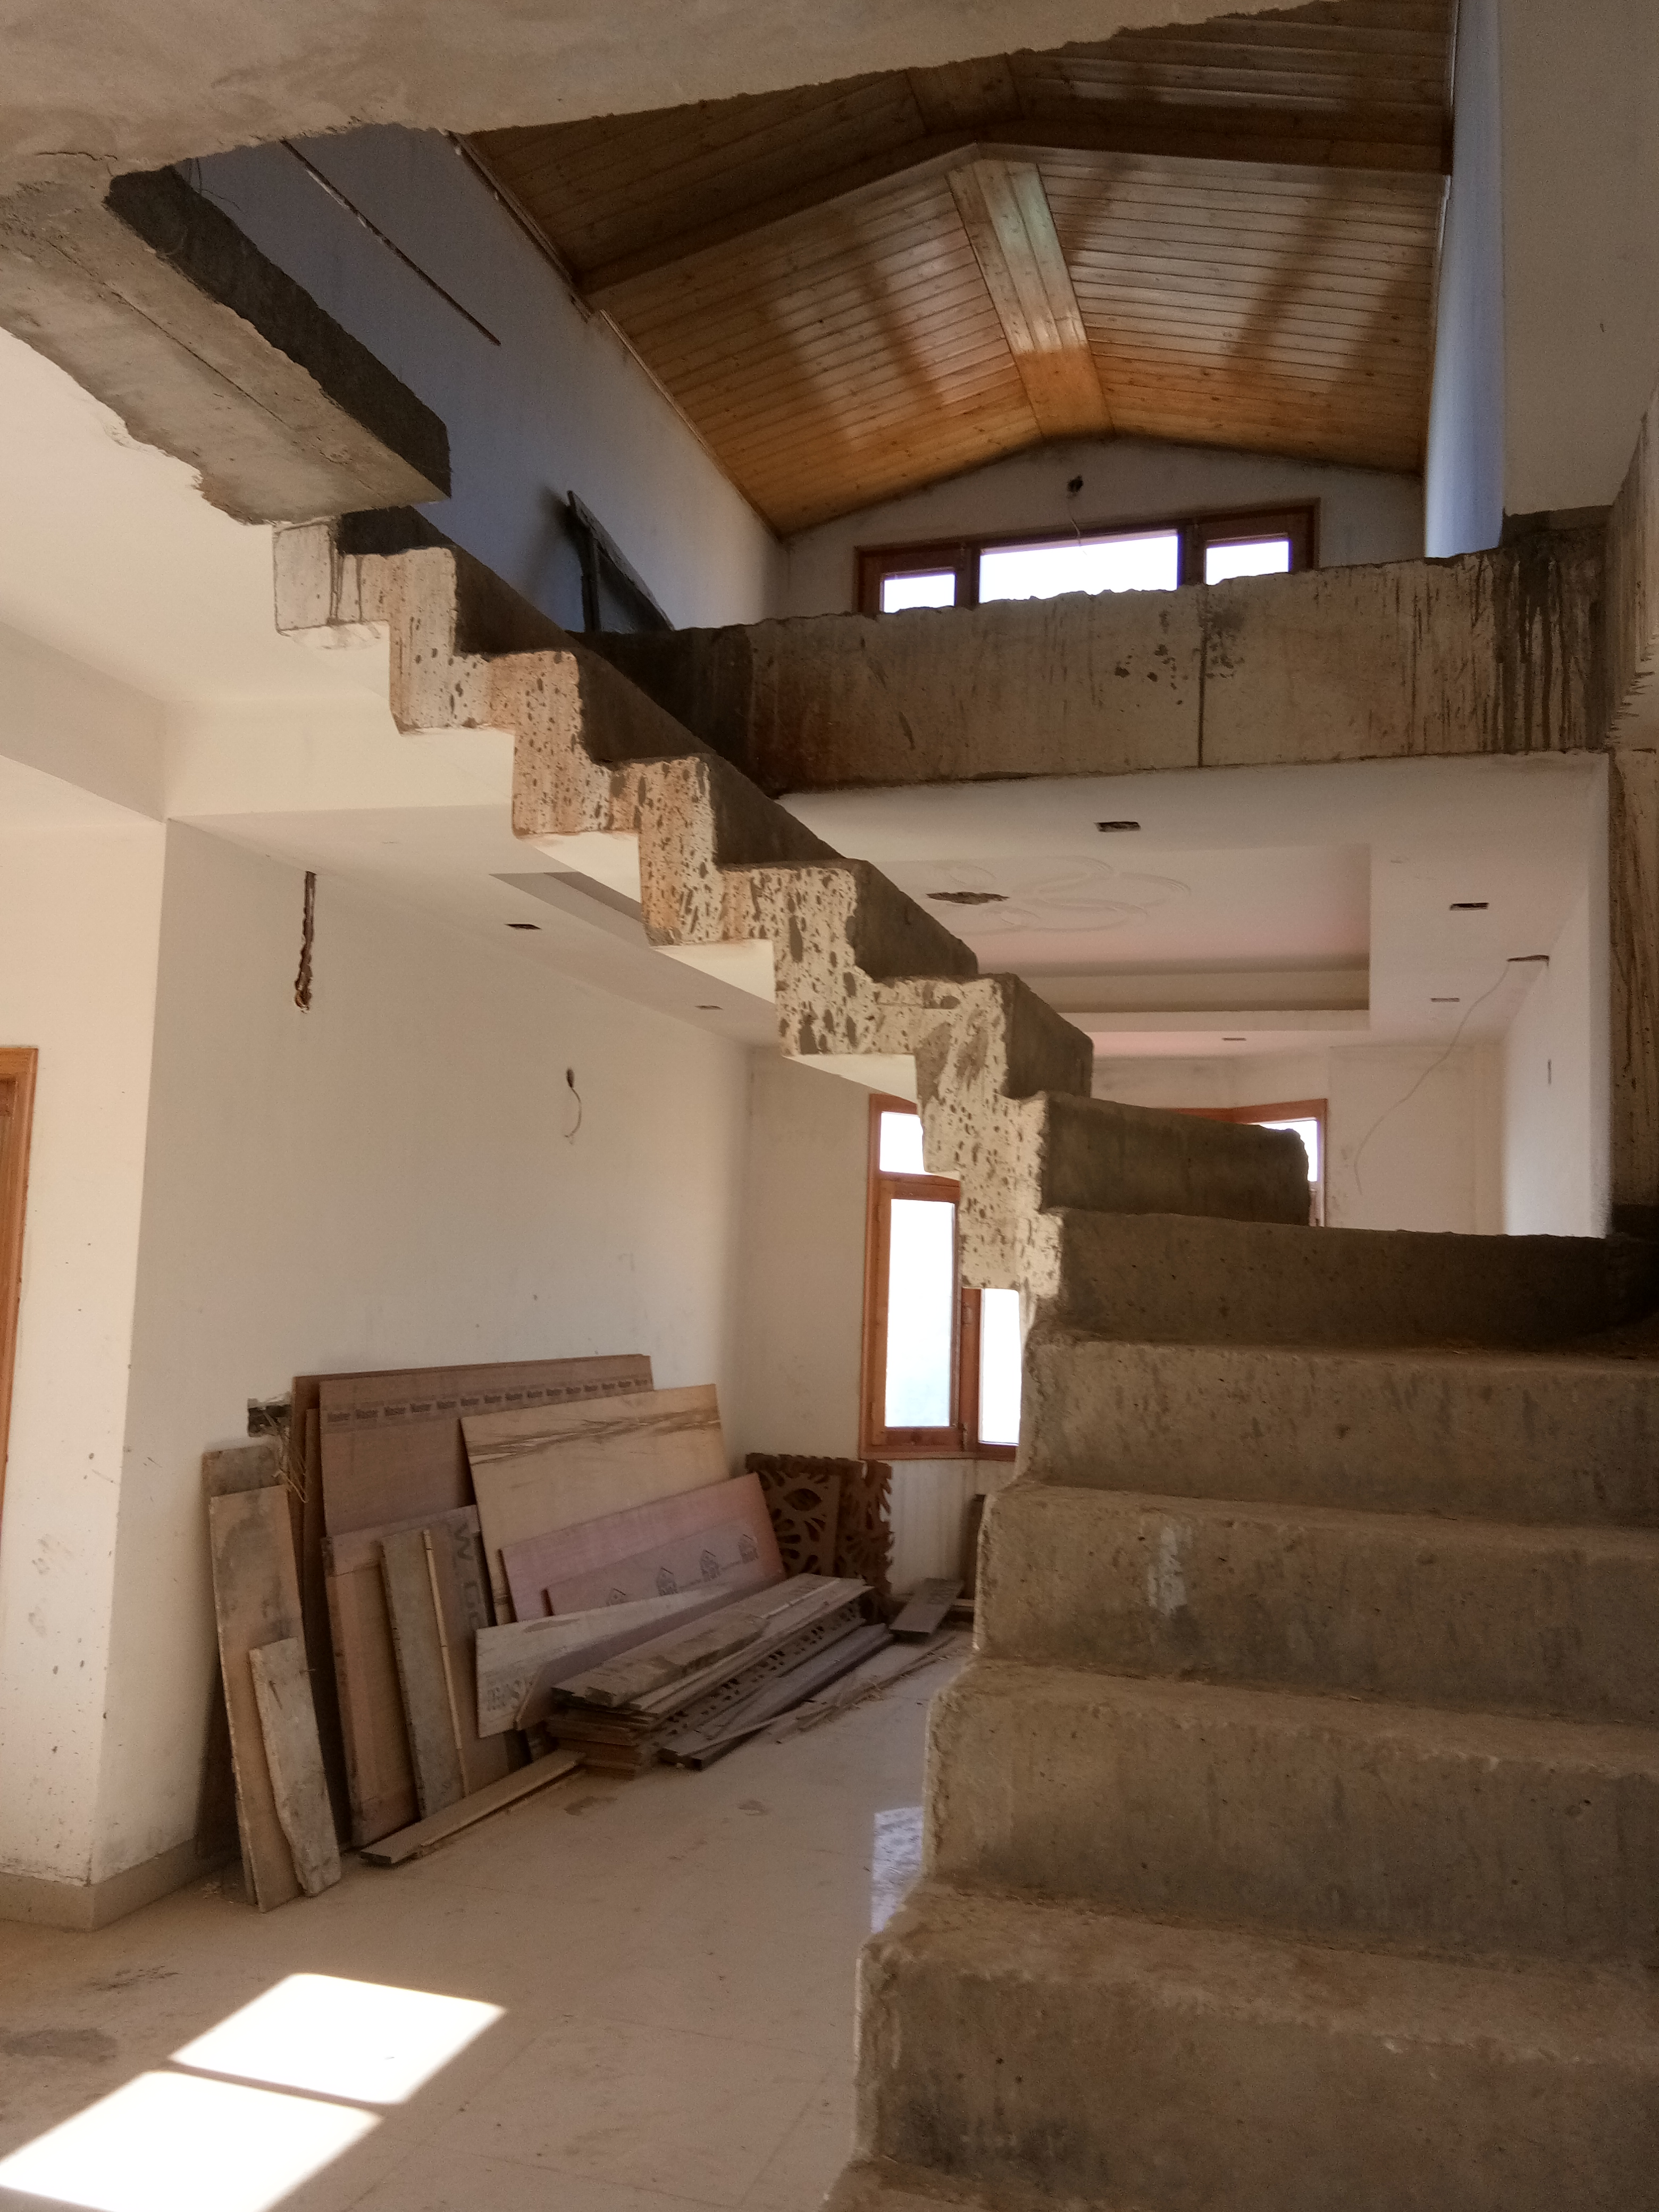 5 Bhk Duplex With 5 Toilet For Sale at Panthaghati Shimla —- Drive in With Covered Parking — Covered Area – 2200 Sqf — Sunny and Beautiful View — Price – 1.25 Cr